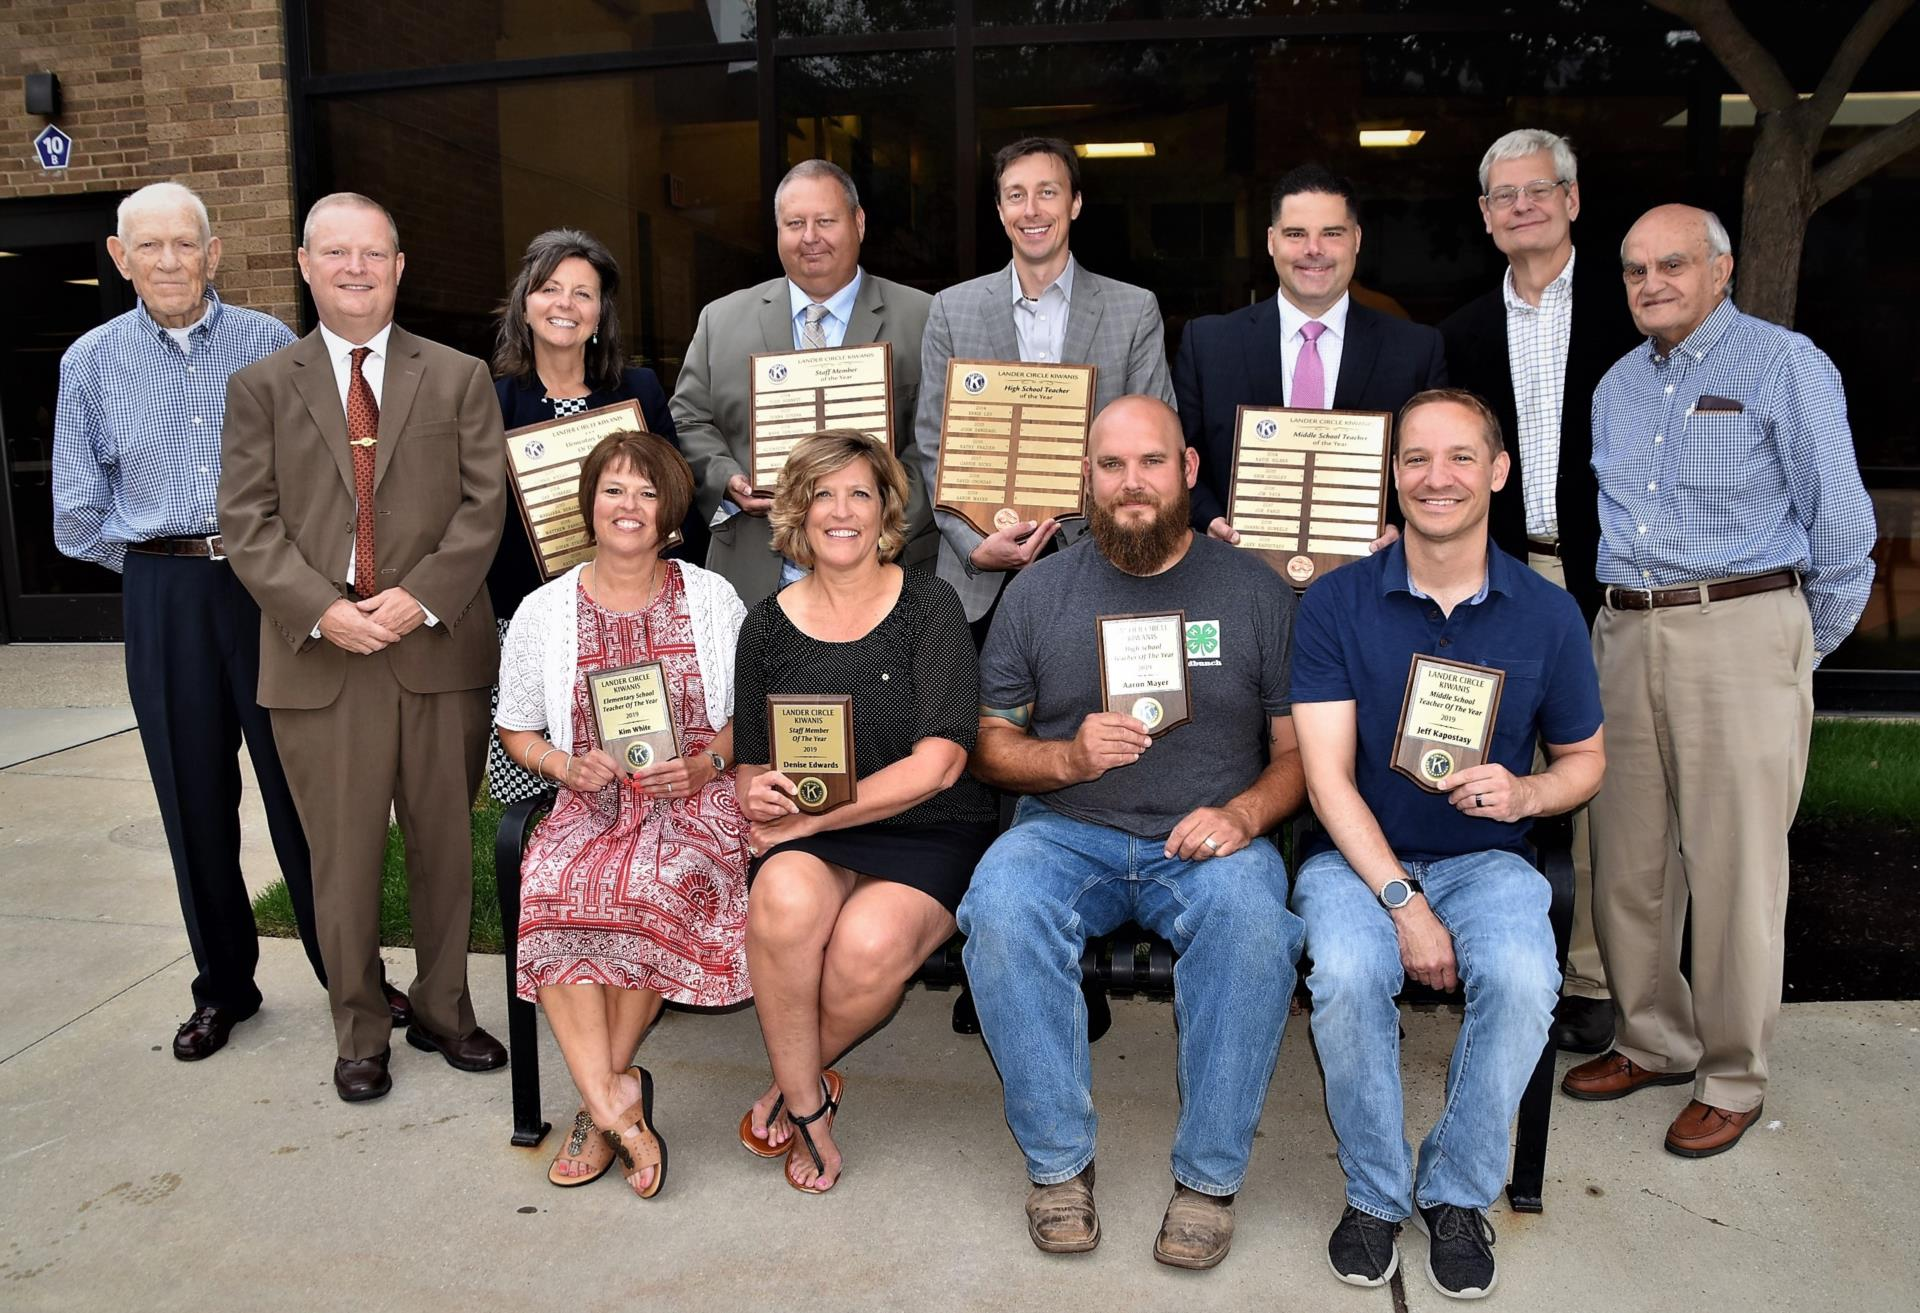 Administrators and Kiwanis Members Surround 2019 Award Winners